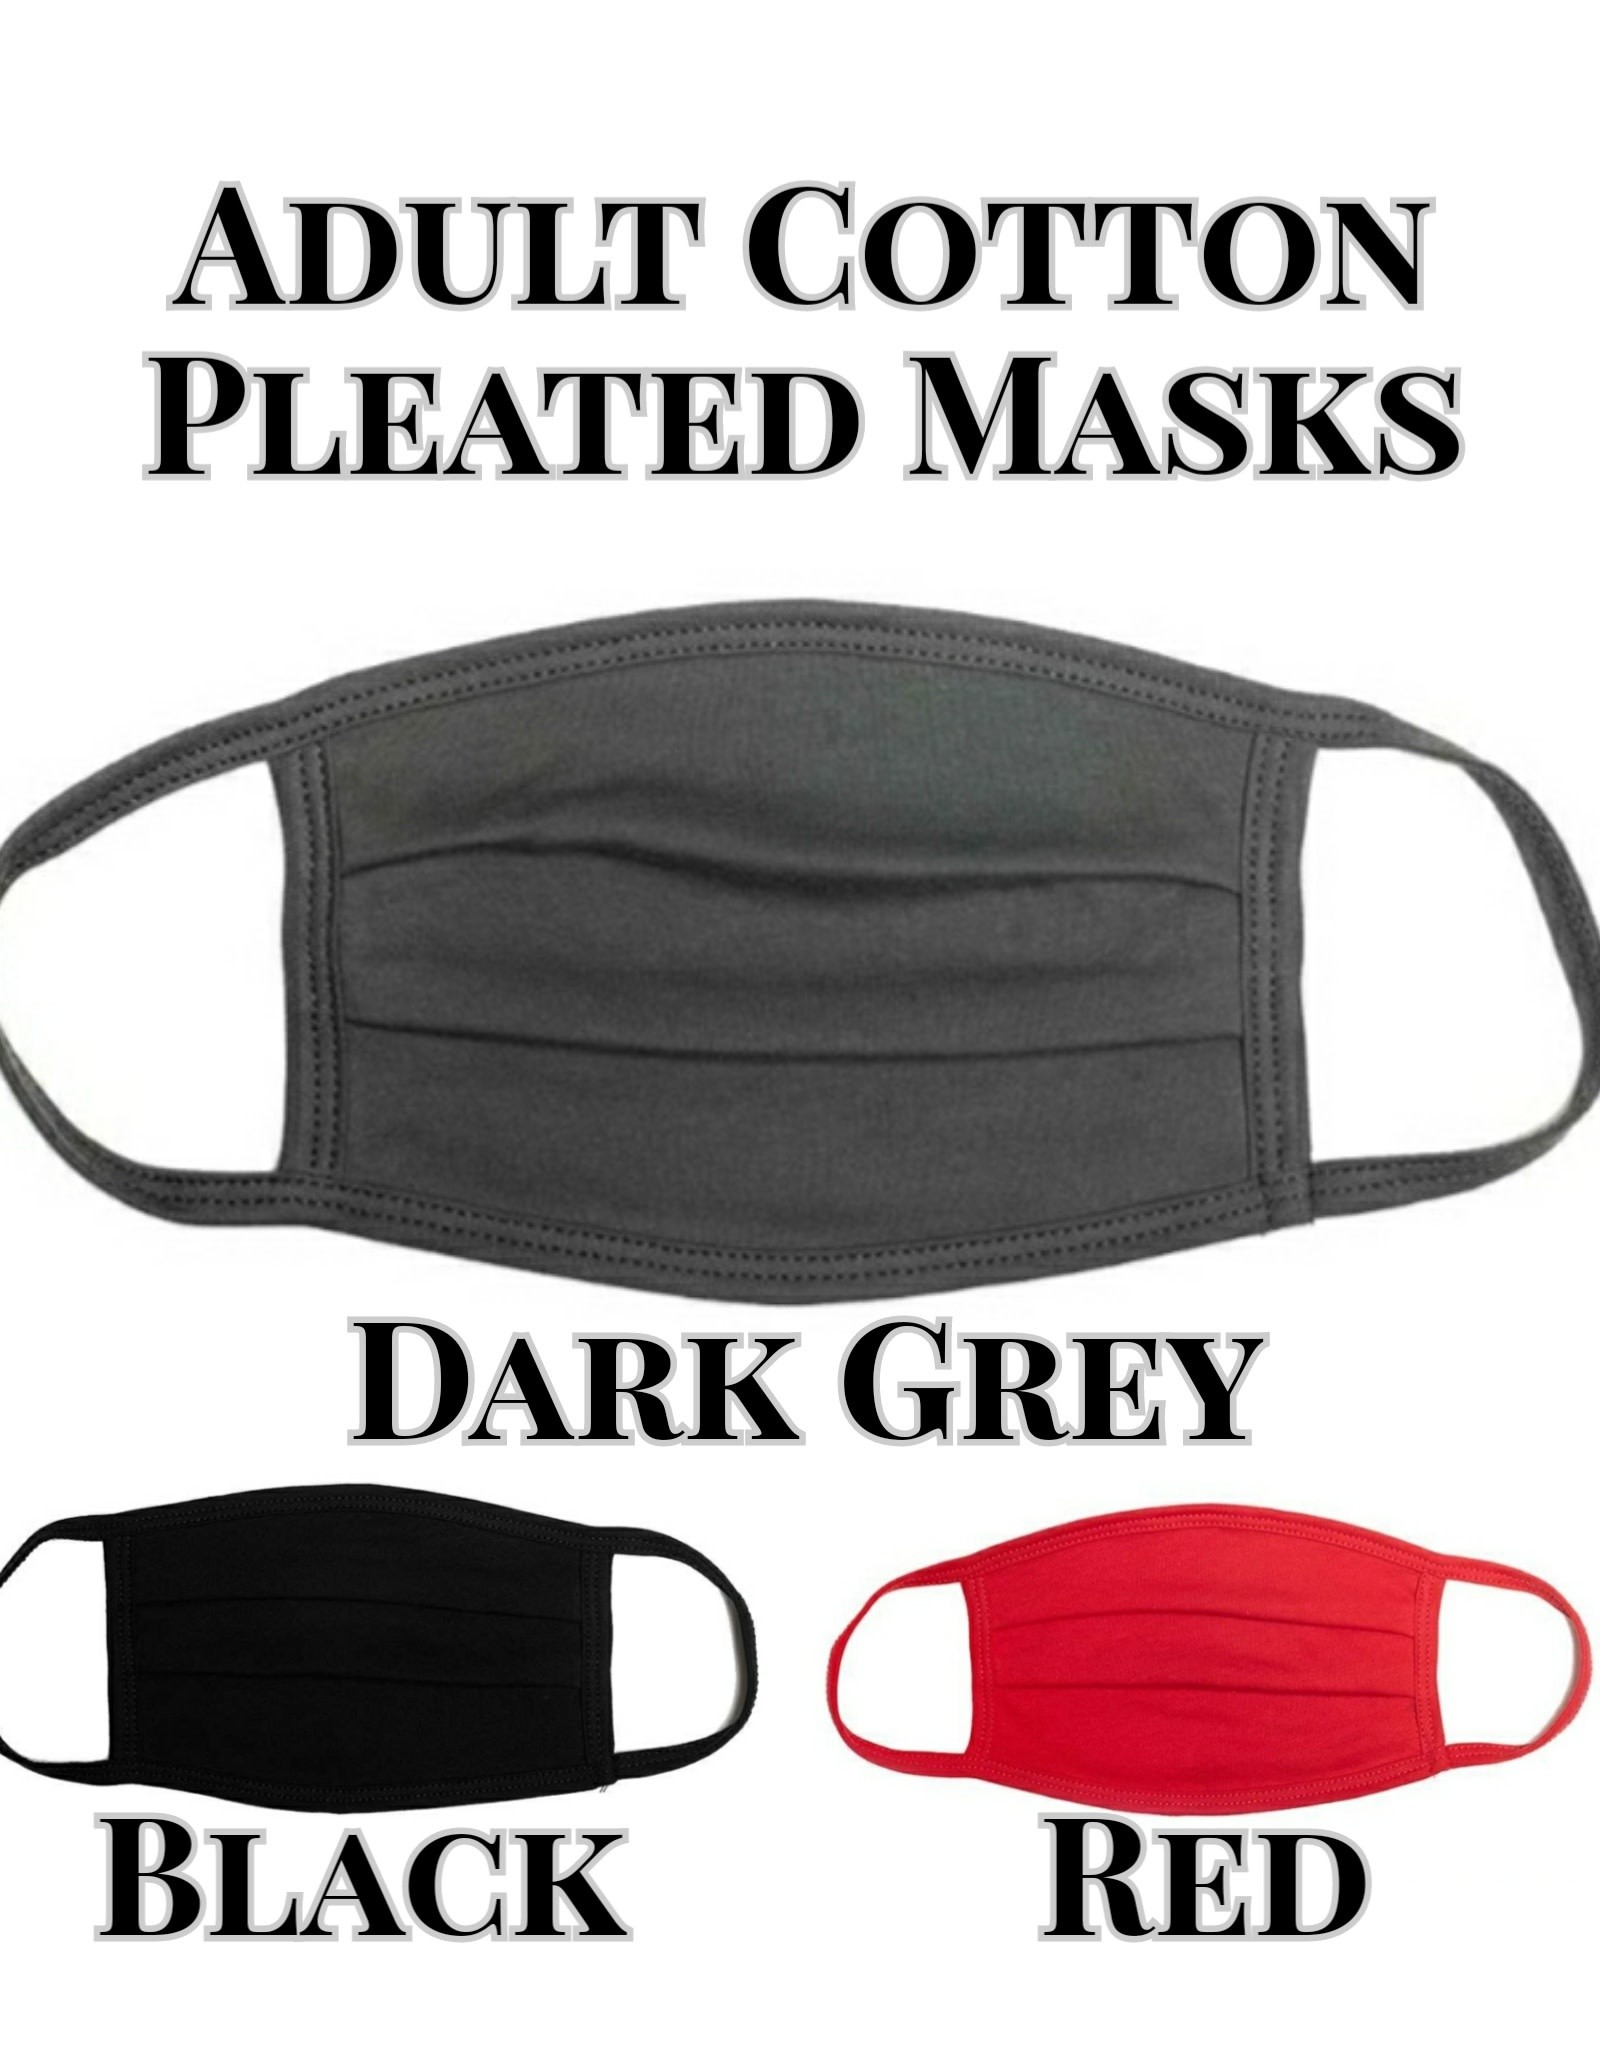 Adult Cotton Pleated Face Mask